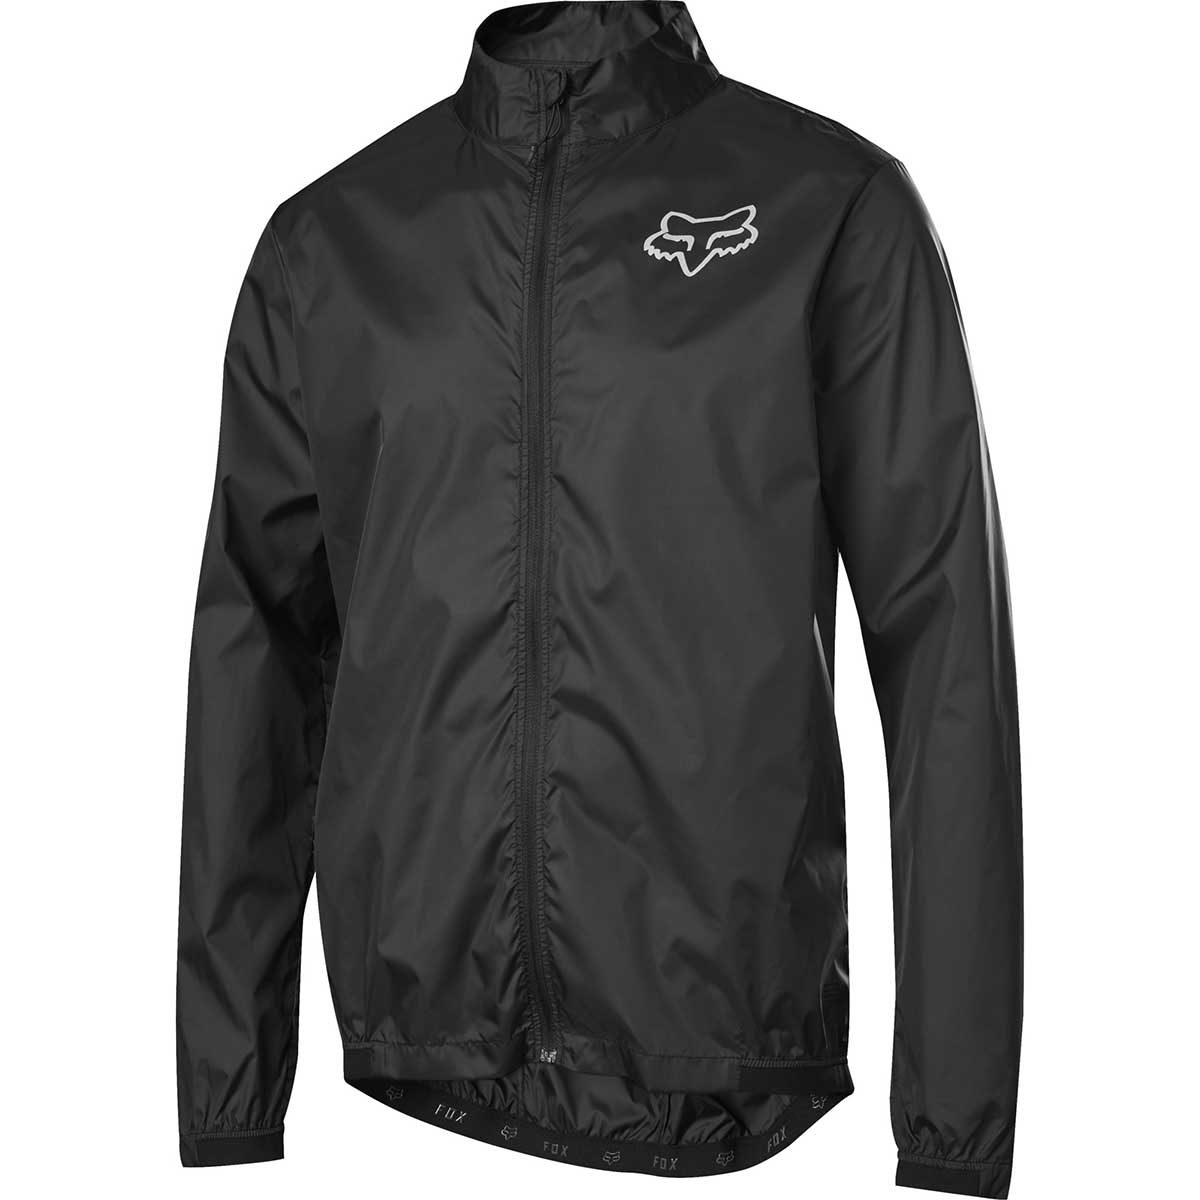 Fox men's Defend Wind Jacket in Black